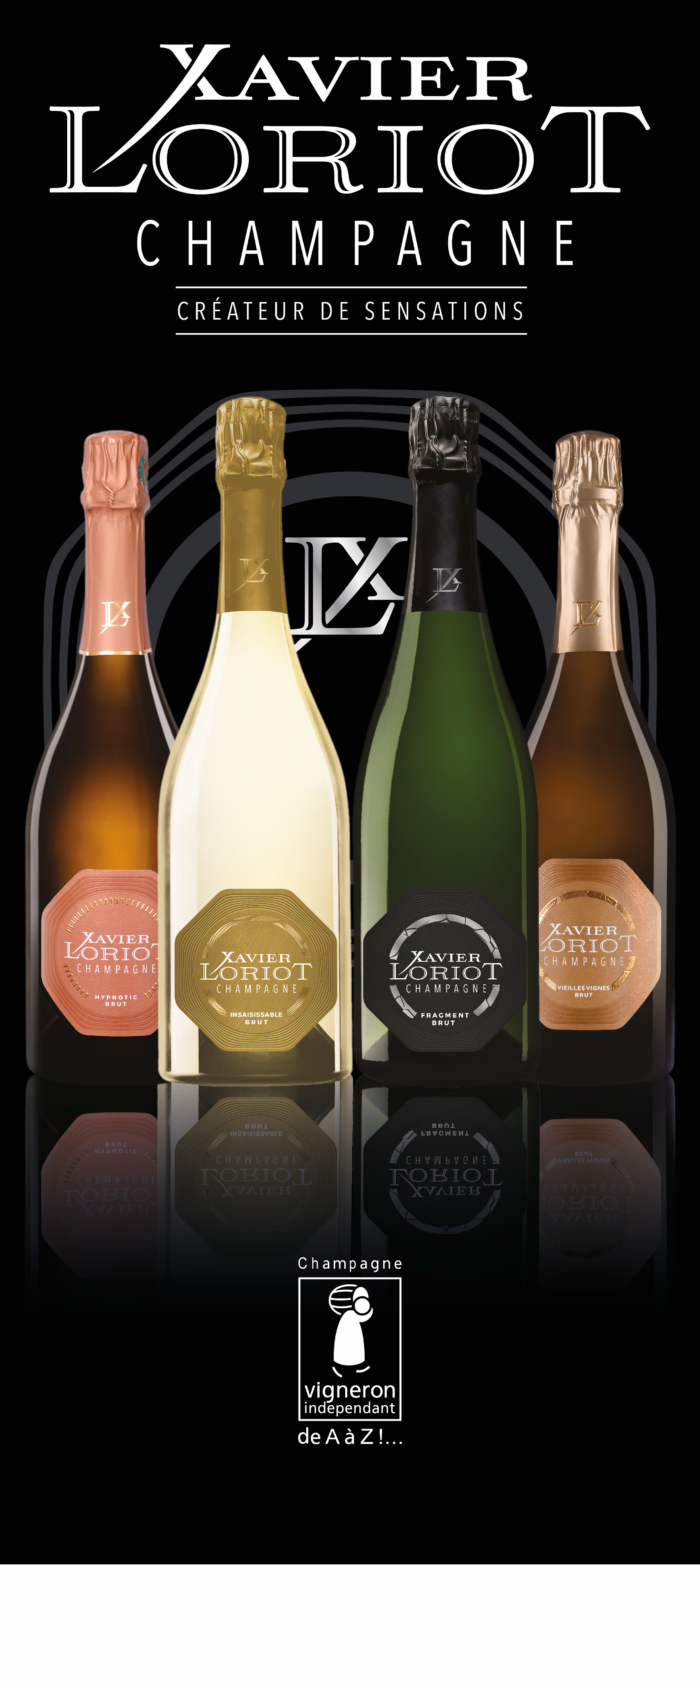 Champagne-XAVIER-LORIOT